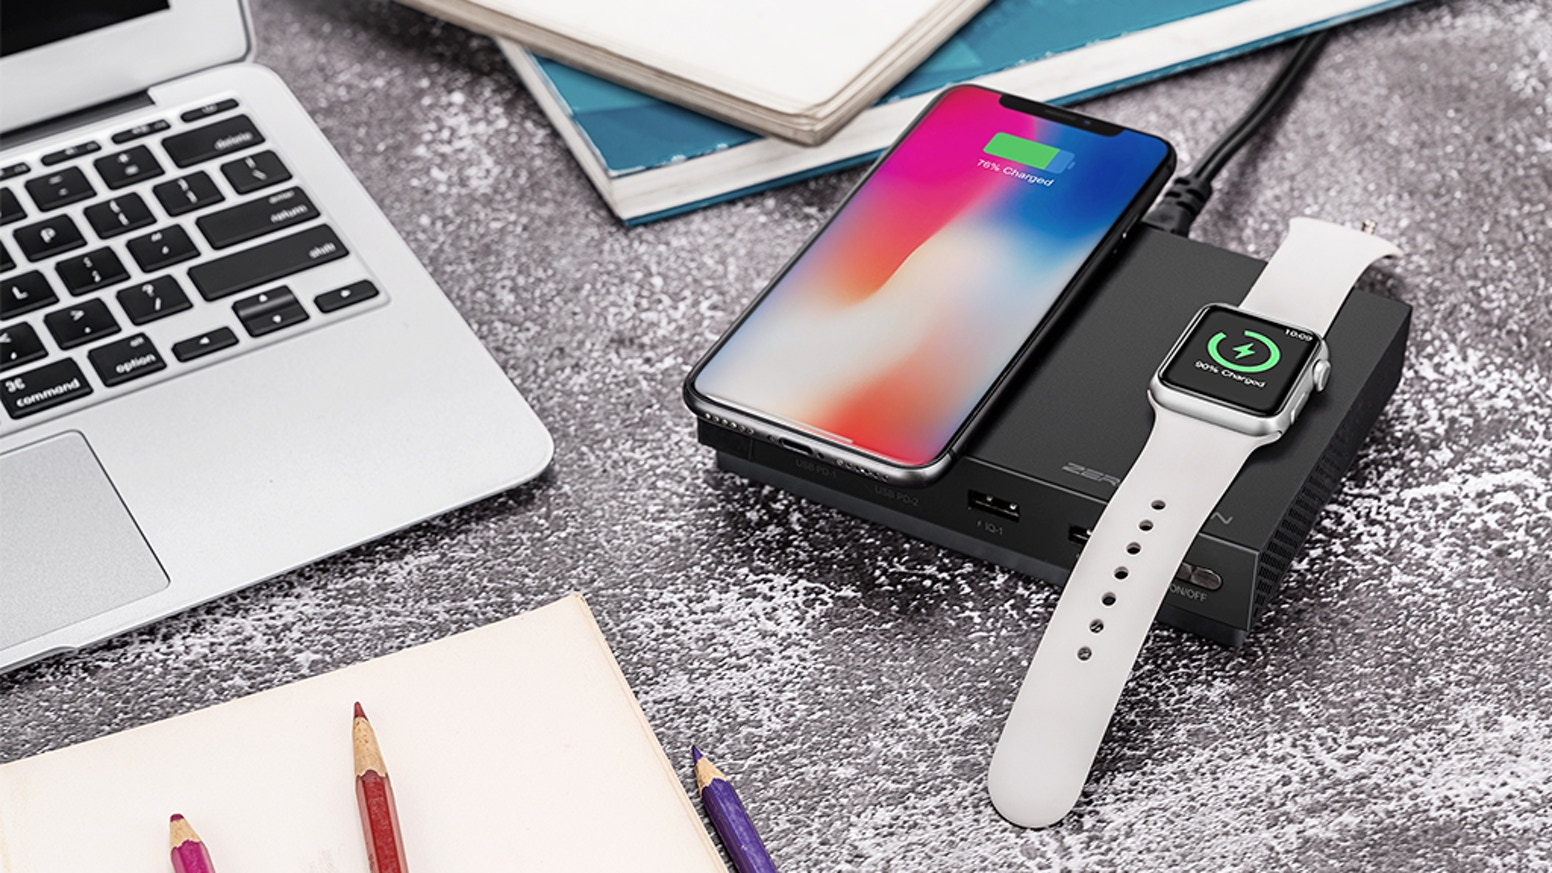 USB-C PD 107W + USB-A 15W + Qi Wireless Charger 10W + Apple Watch Magnetic Charger 3W Total 135W. Fast Charge for all your gadgets.